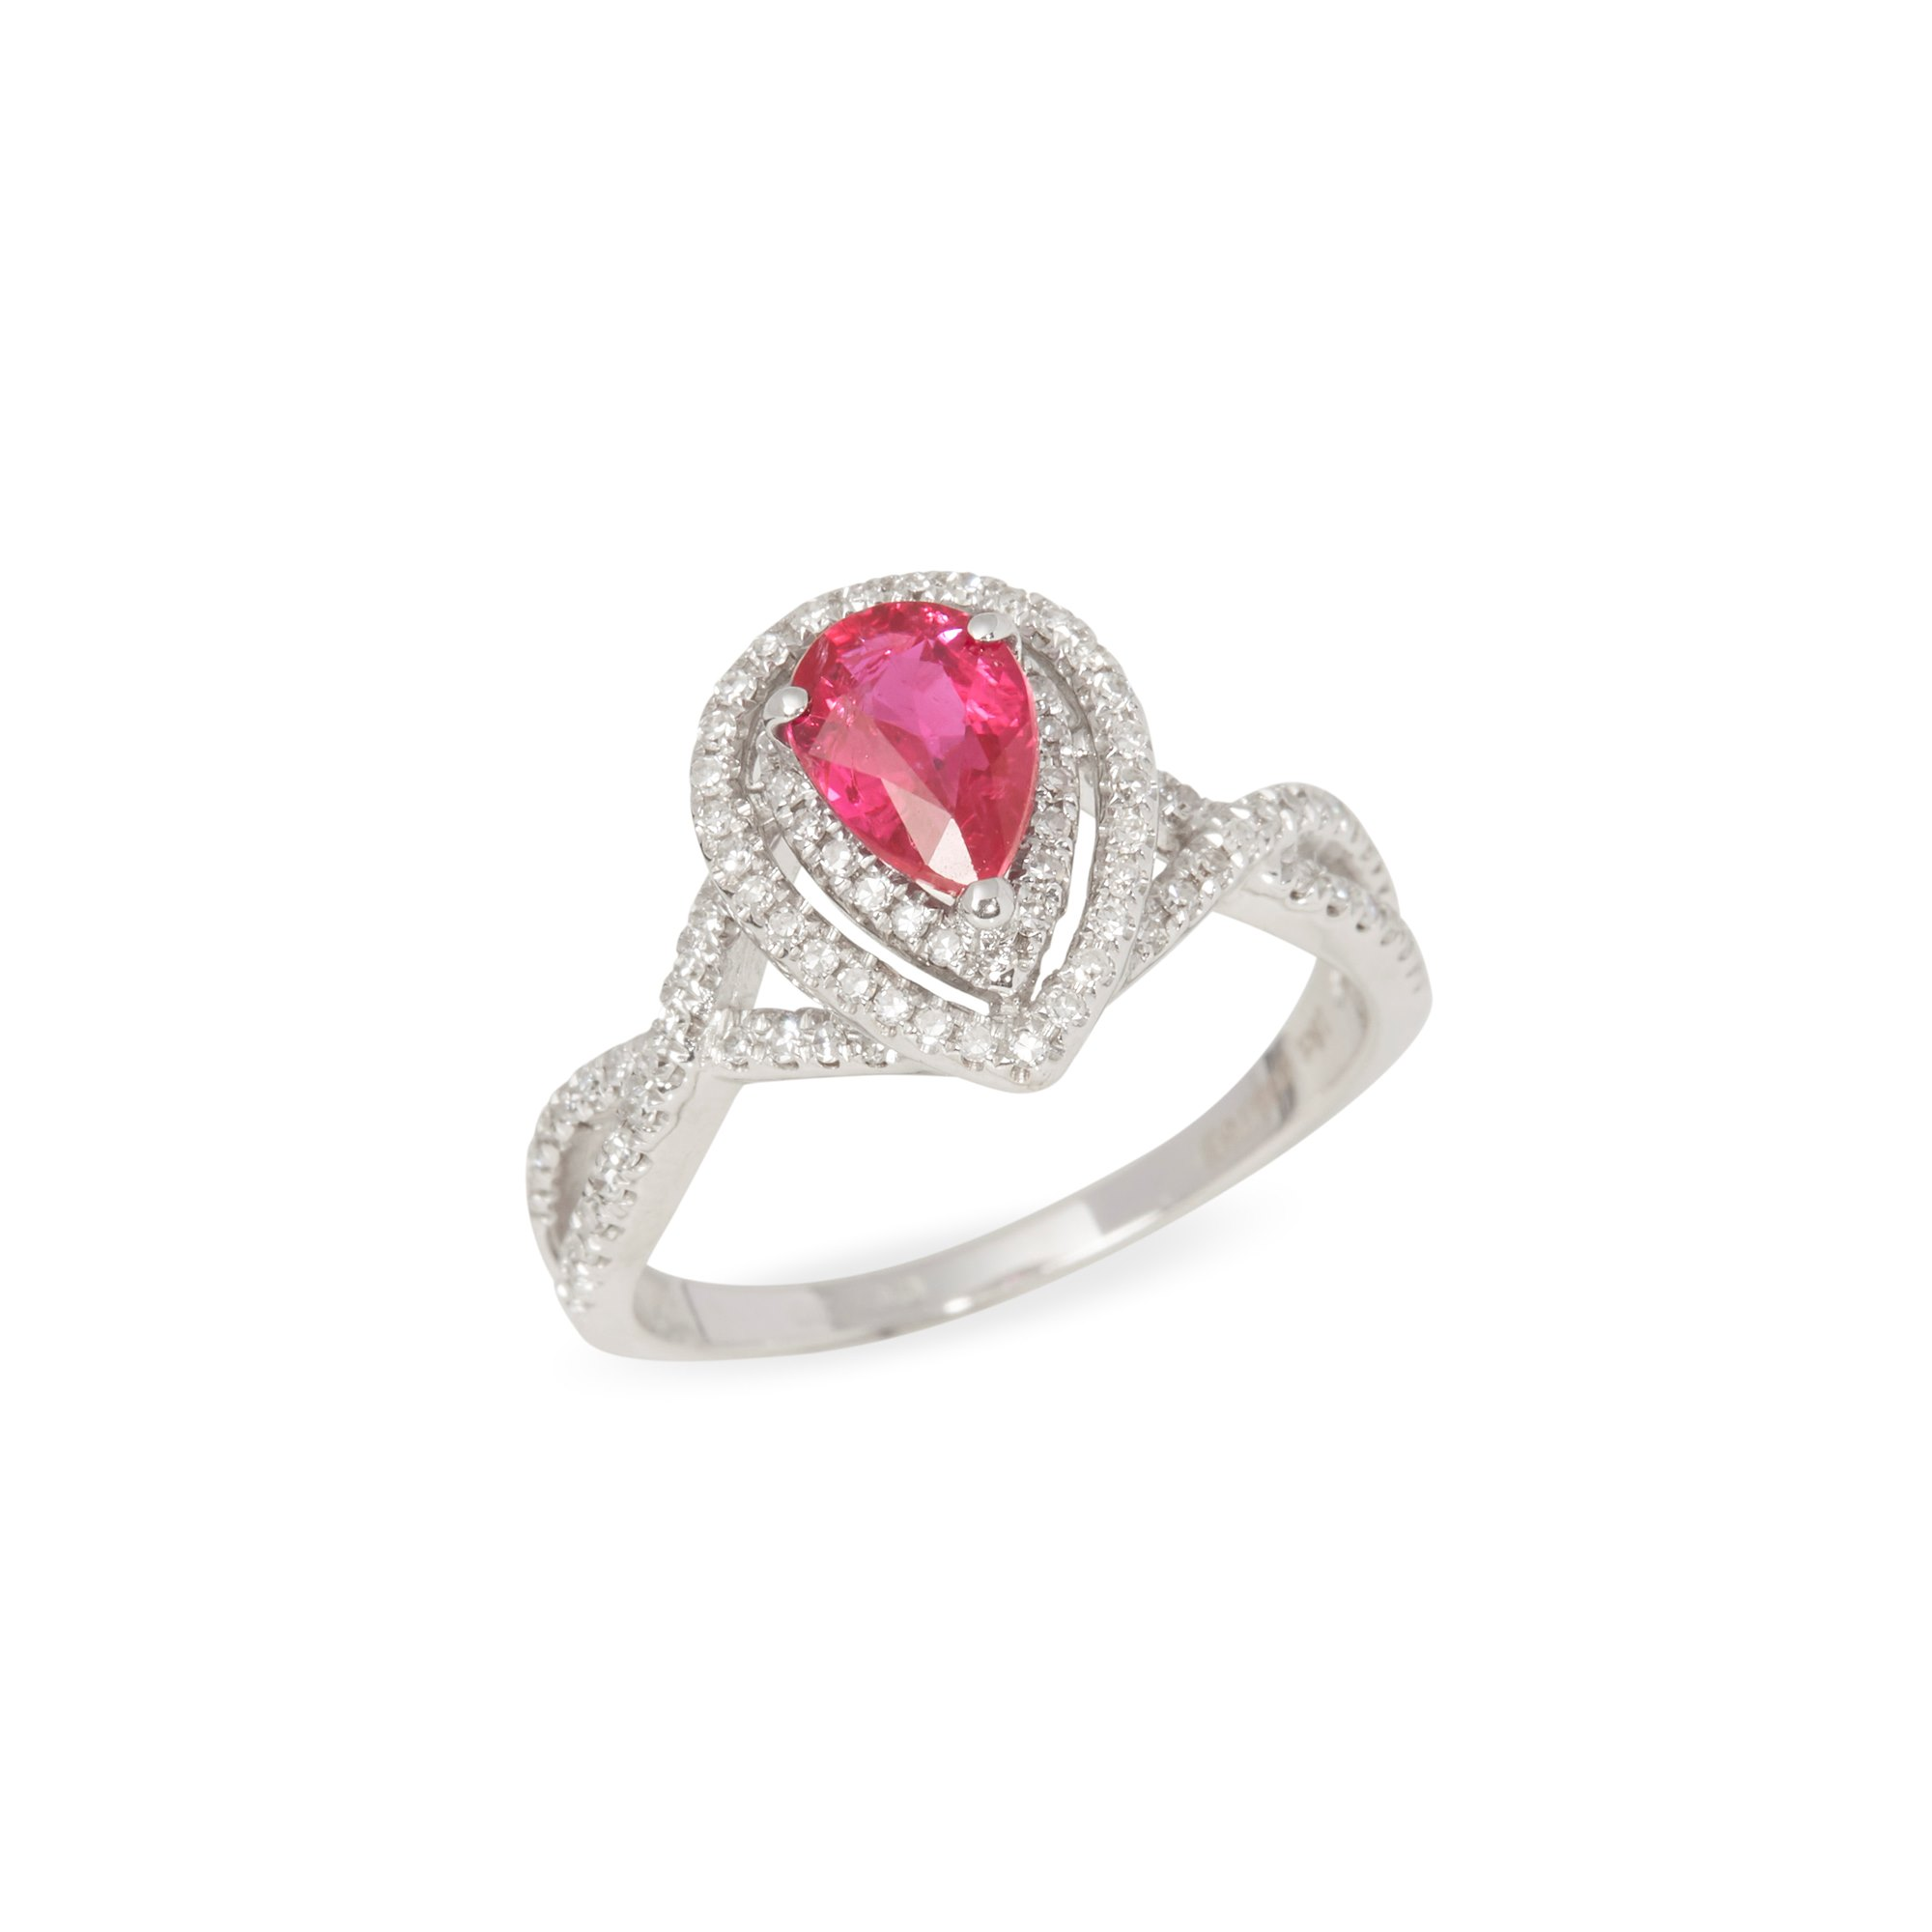 David Jerome Certified 1.02ct Untreated Burmese Pear Cut Ruby and Diamond 18ct gold Ring